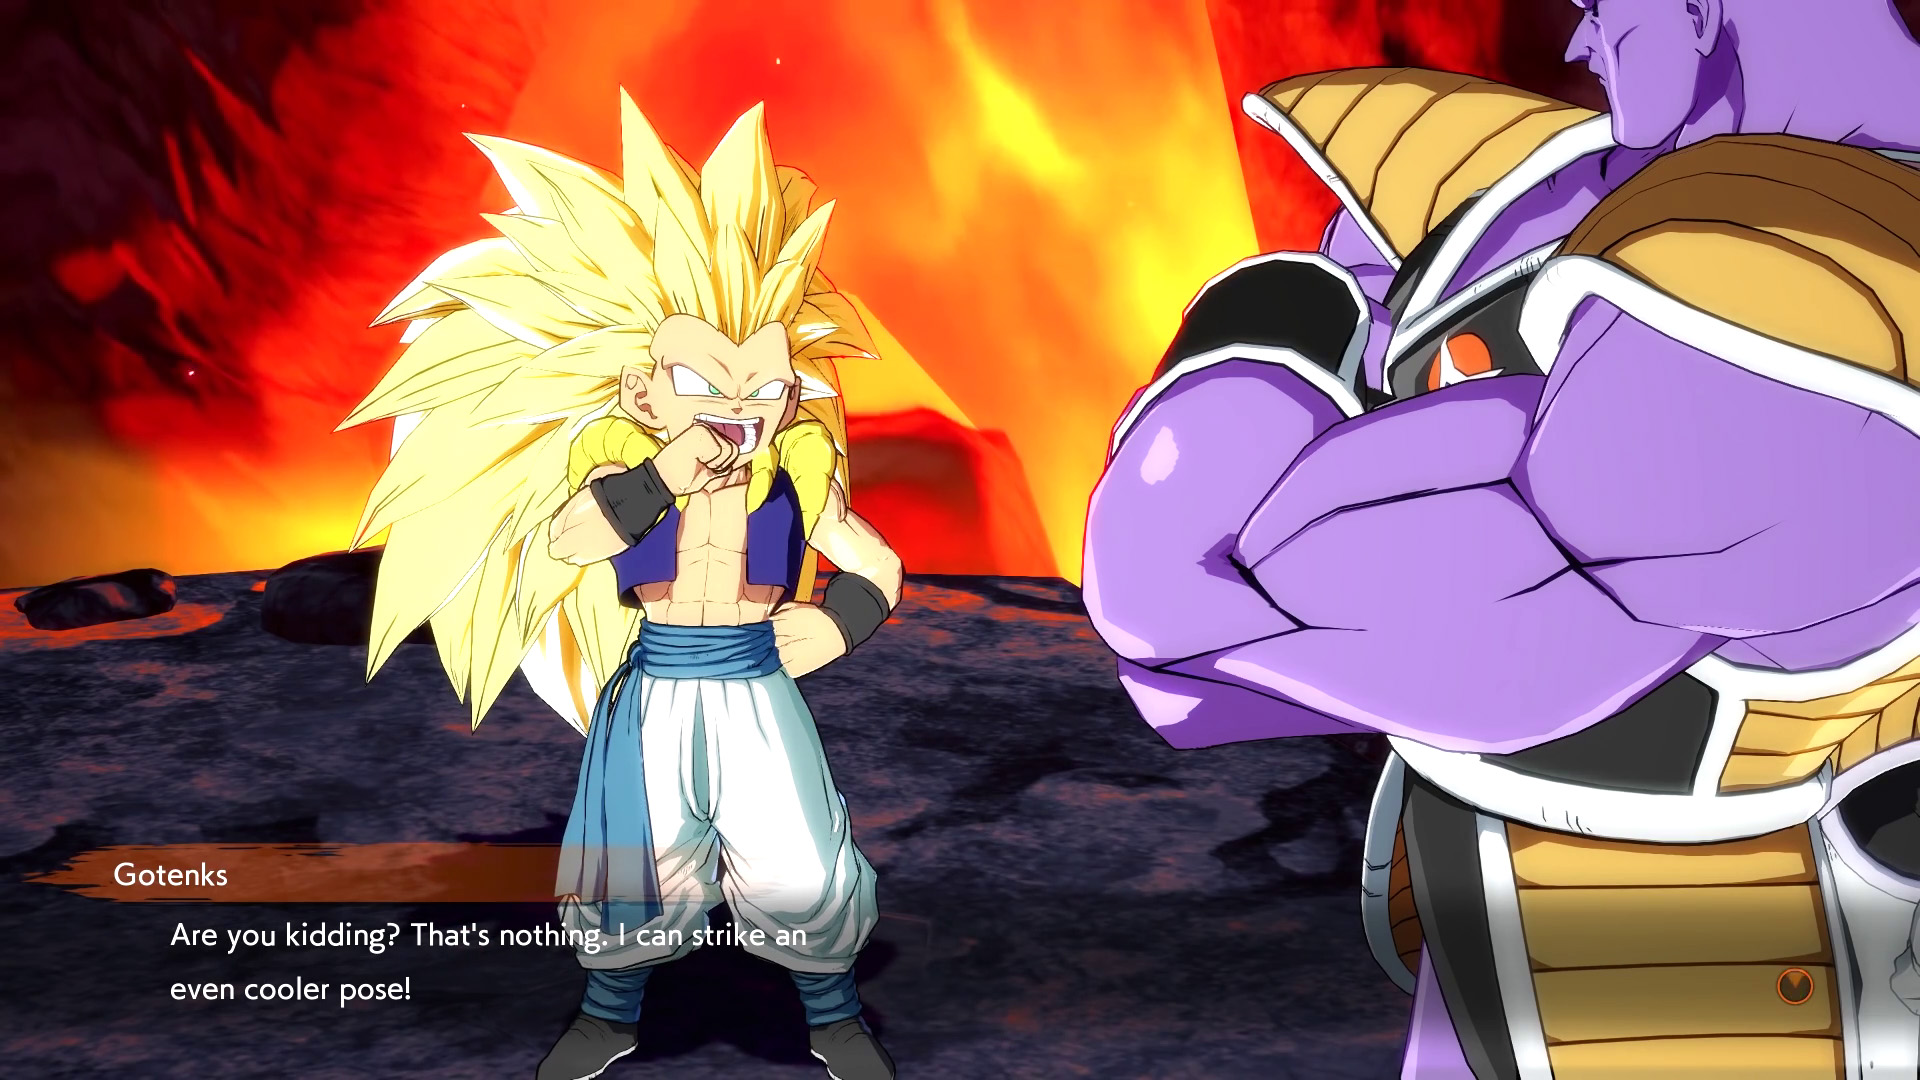 Dragon ball fighterz 39 s story mode is a love letter to a great series usgamer - Dragon ball z 21 ...